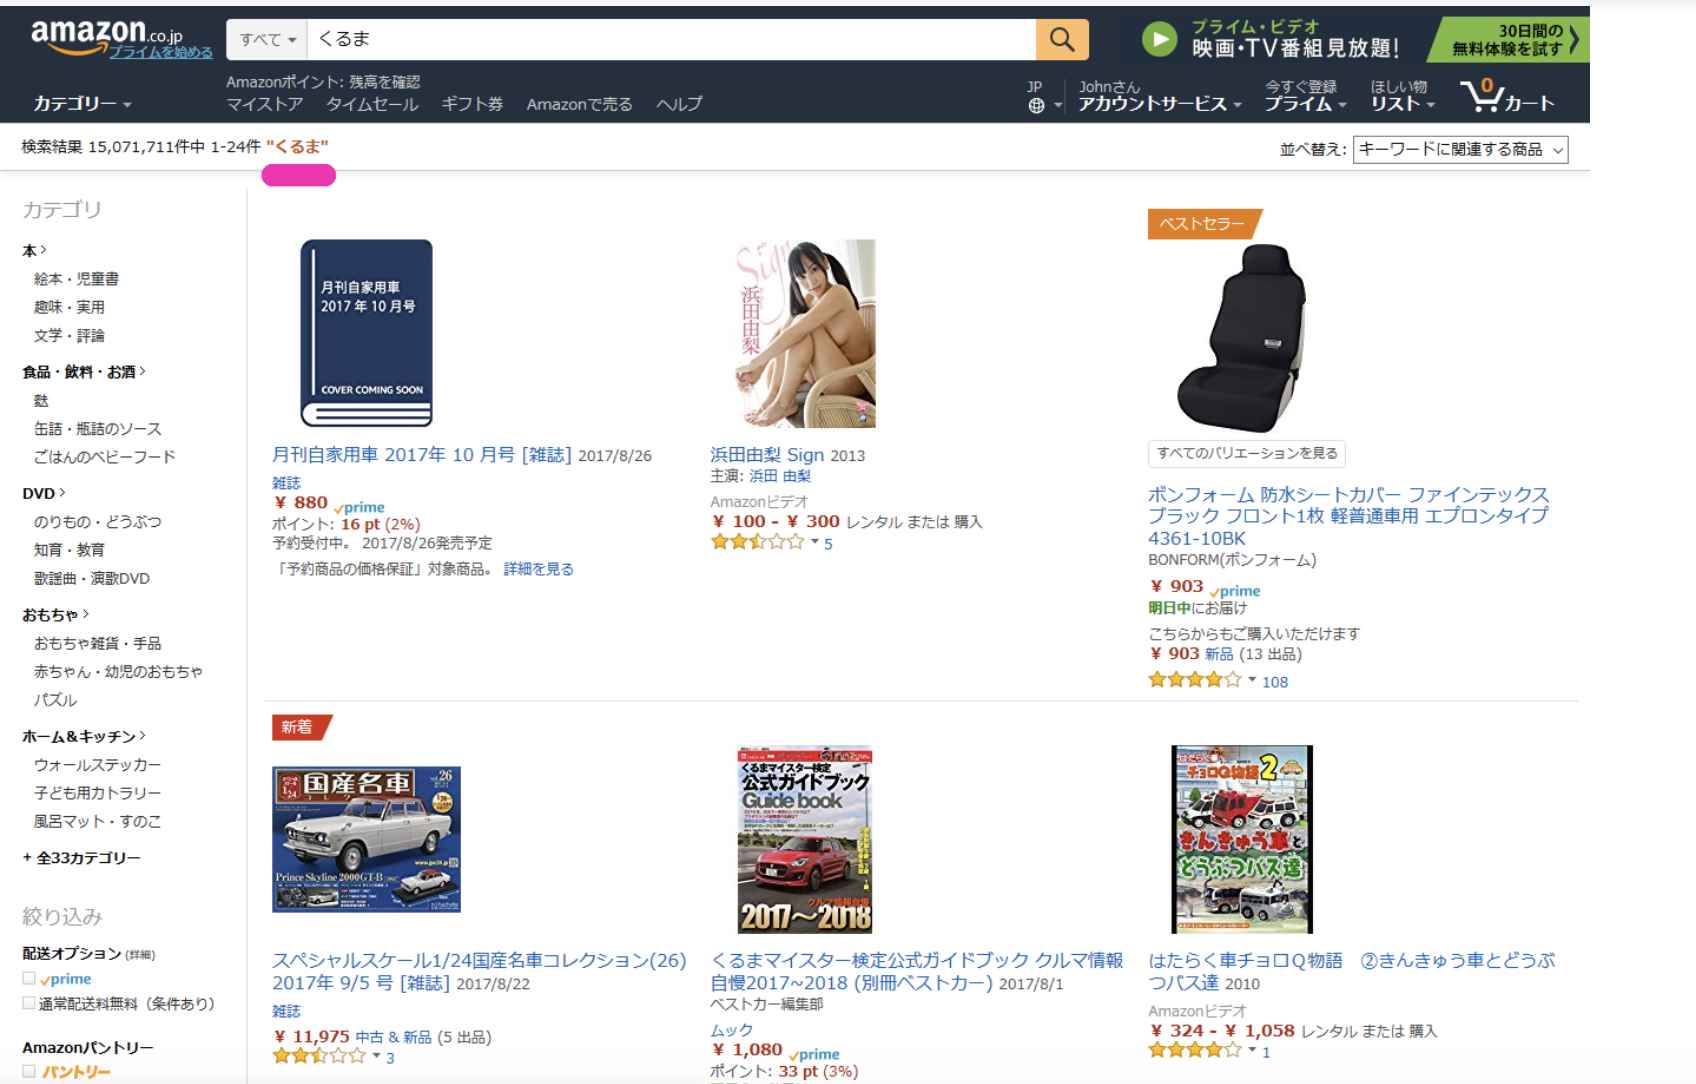 amazon product image- selling on Amazon japan